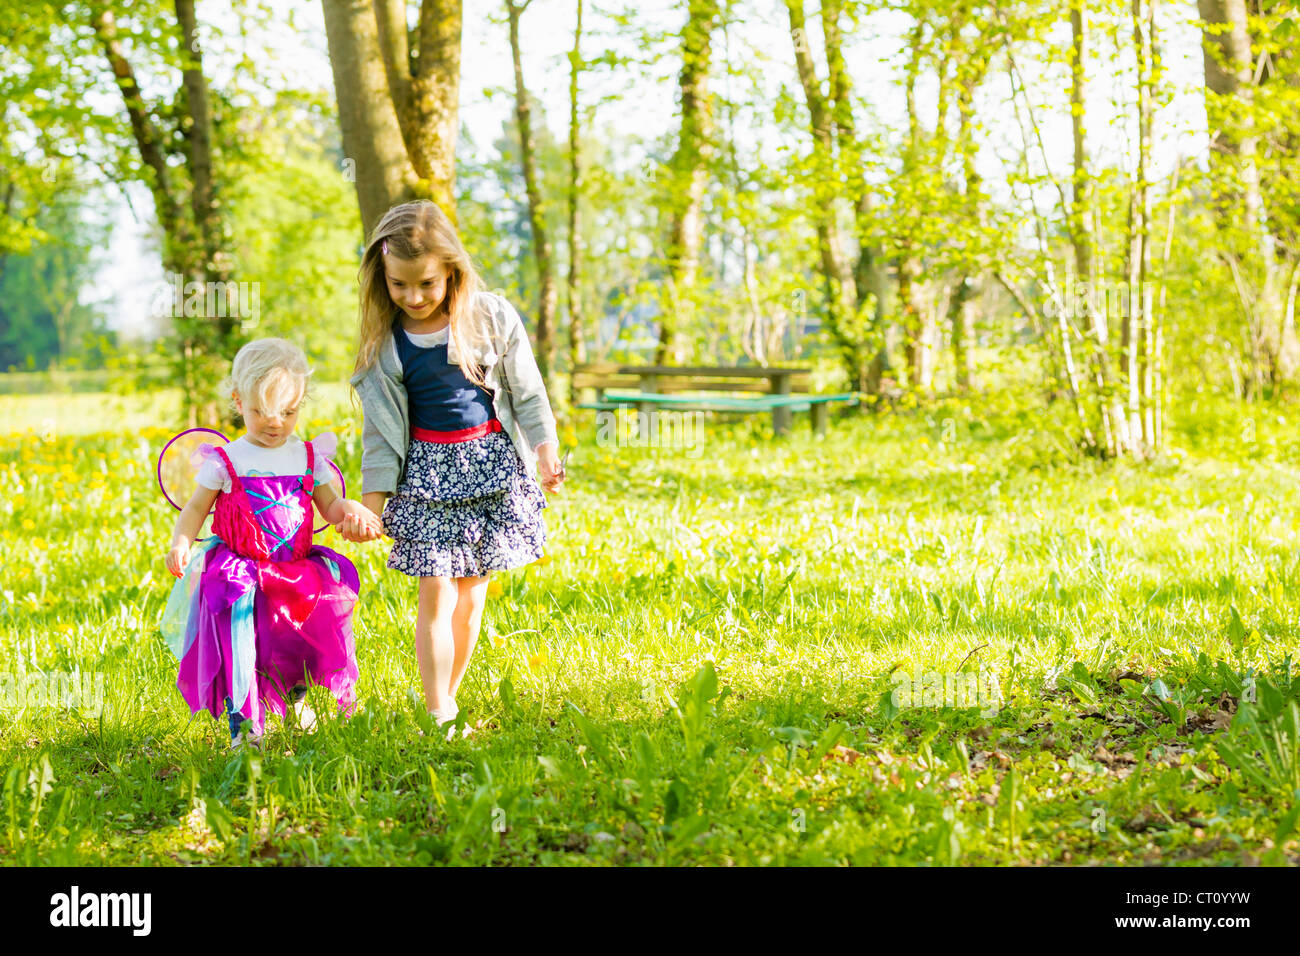 Girls walking together in field - Stock Image